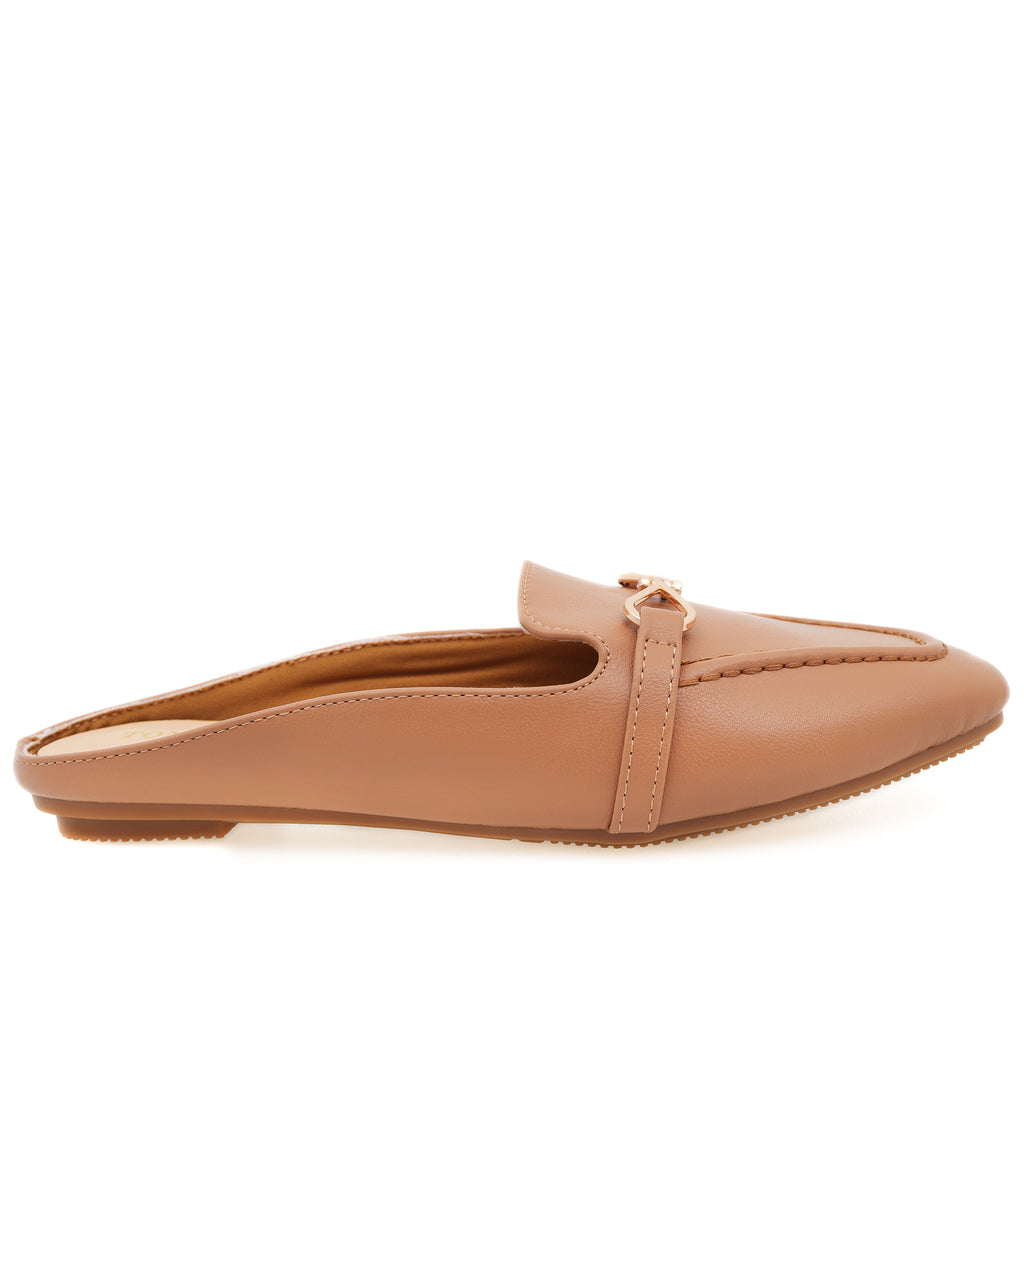 Tomaz XP102 Ladies Mule Slip Ons (Camel)